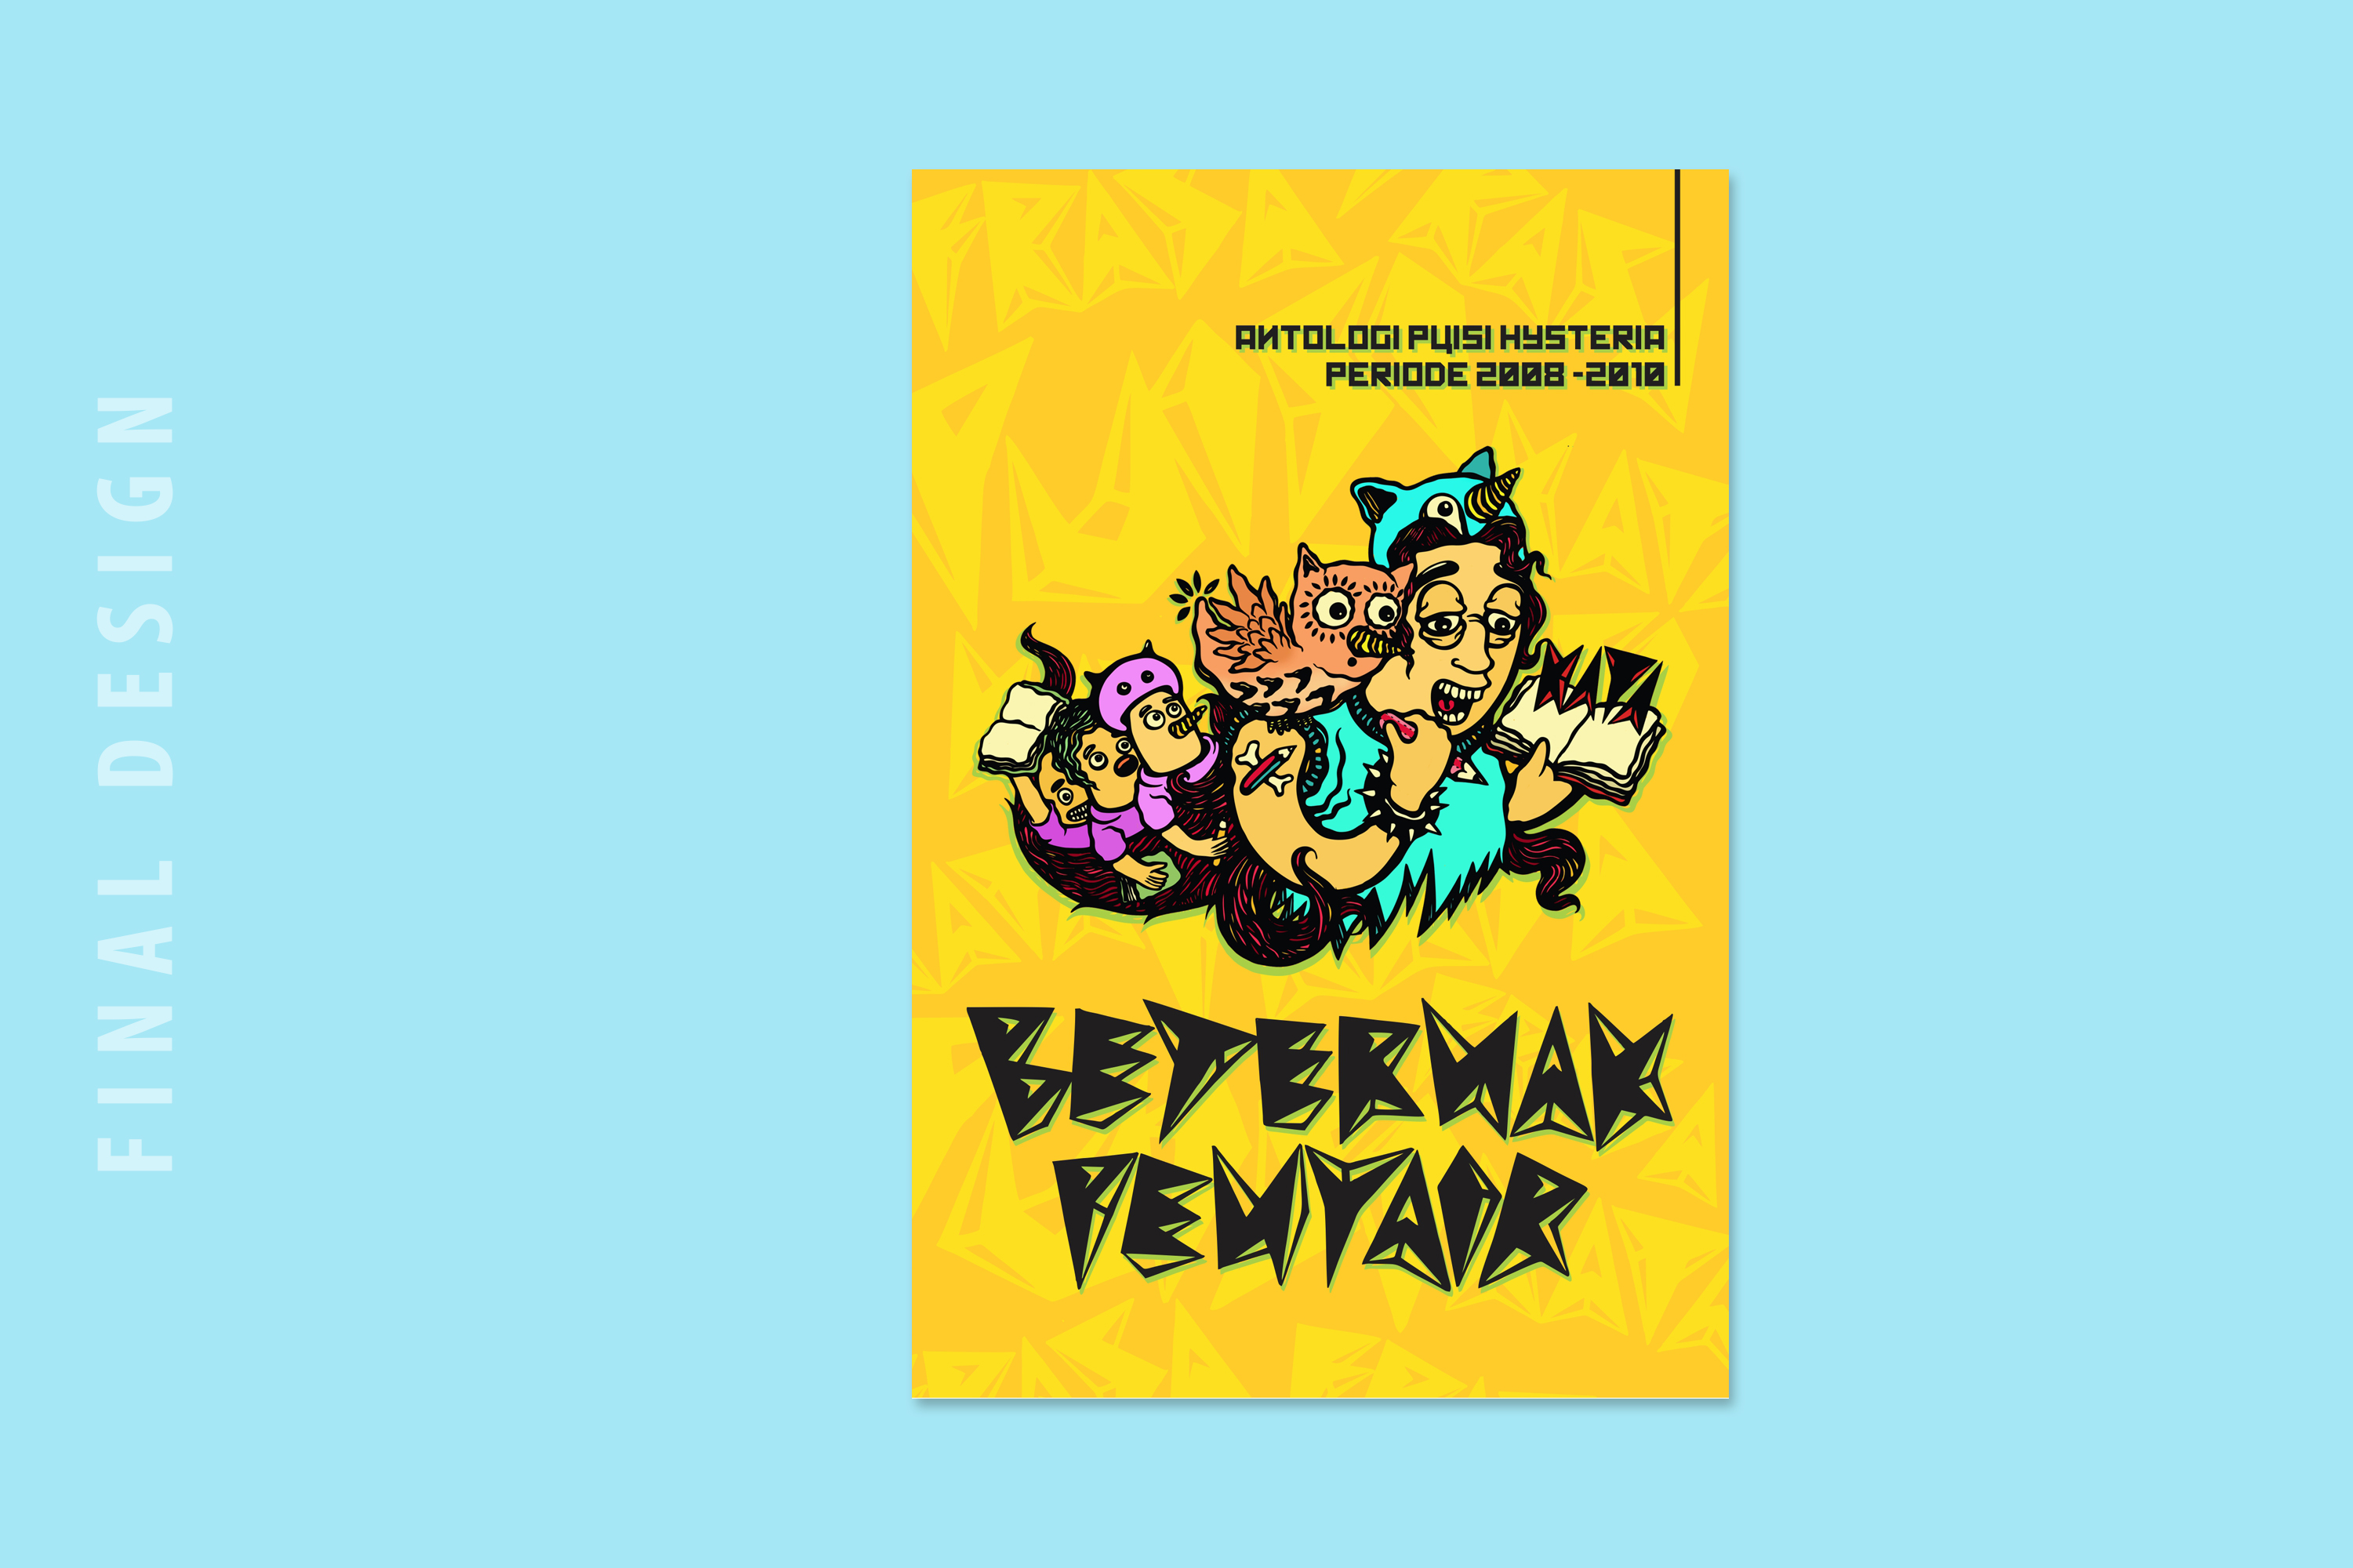 BETERNAK PENYAIR, a book cover project